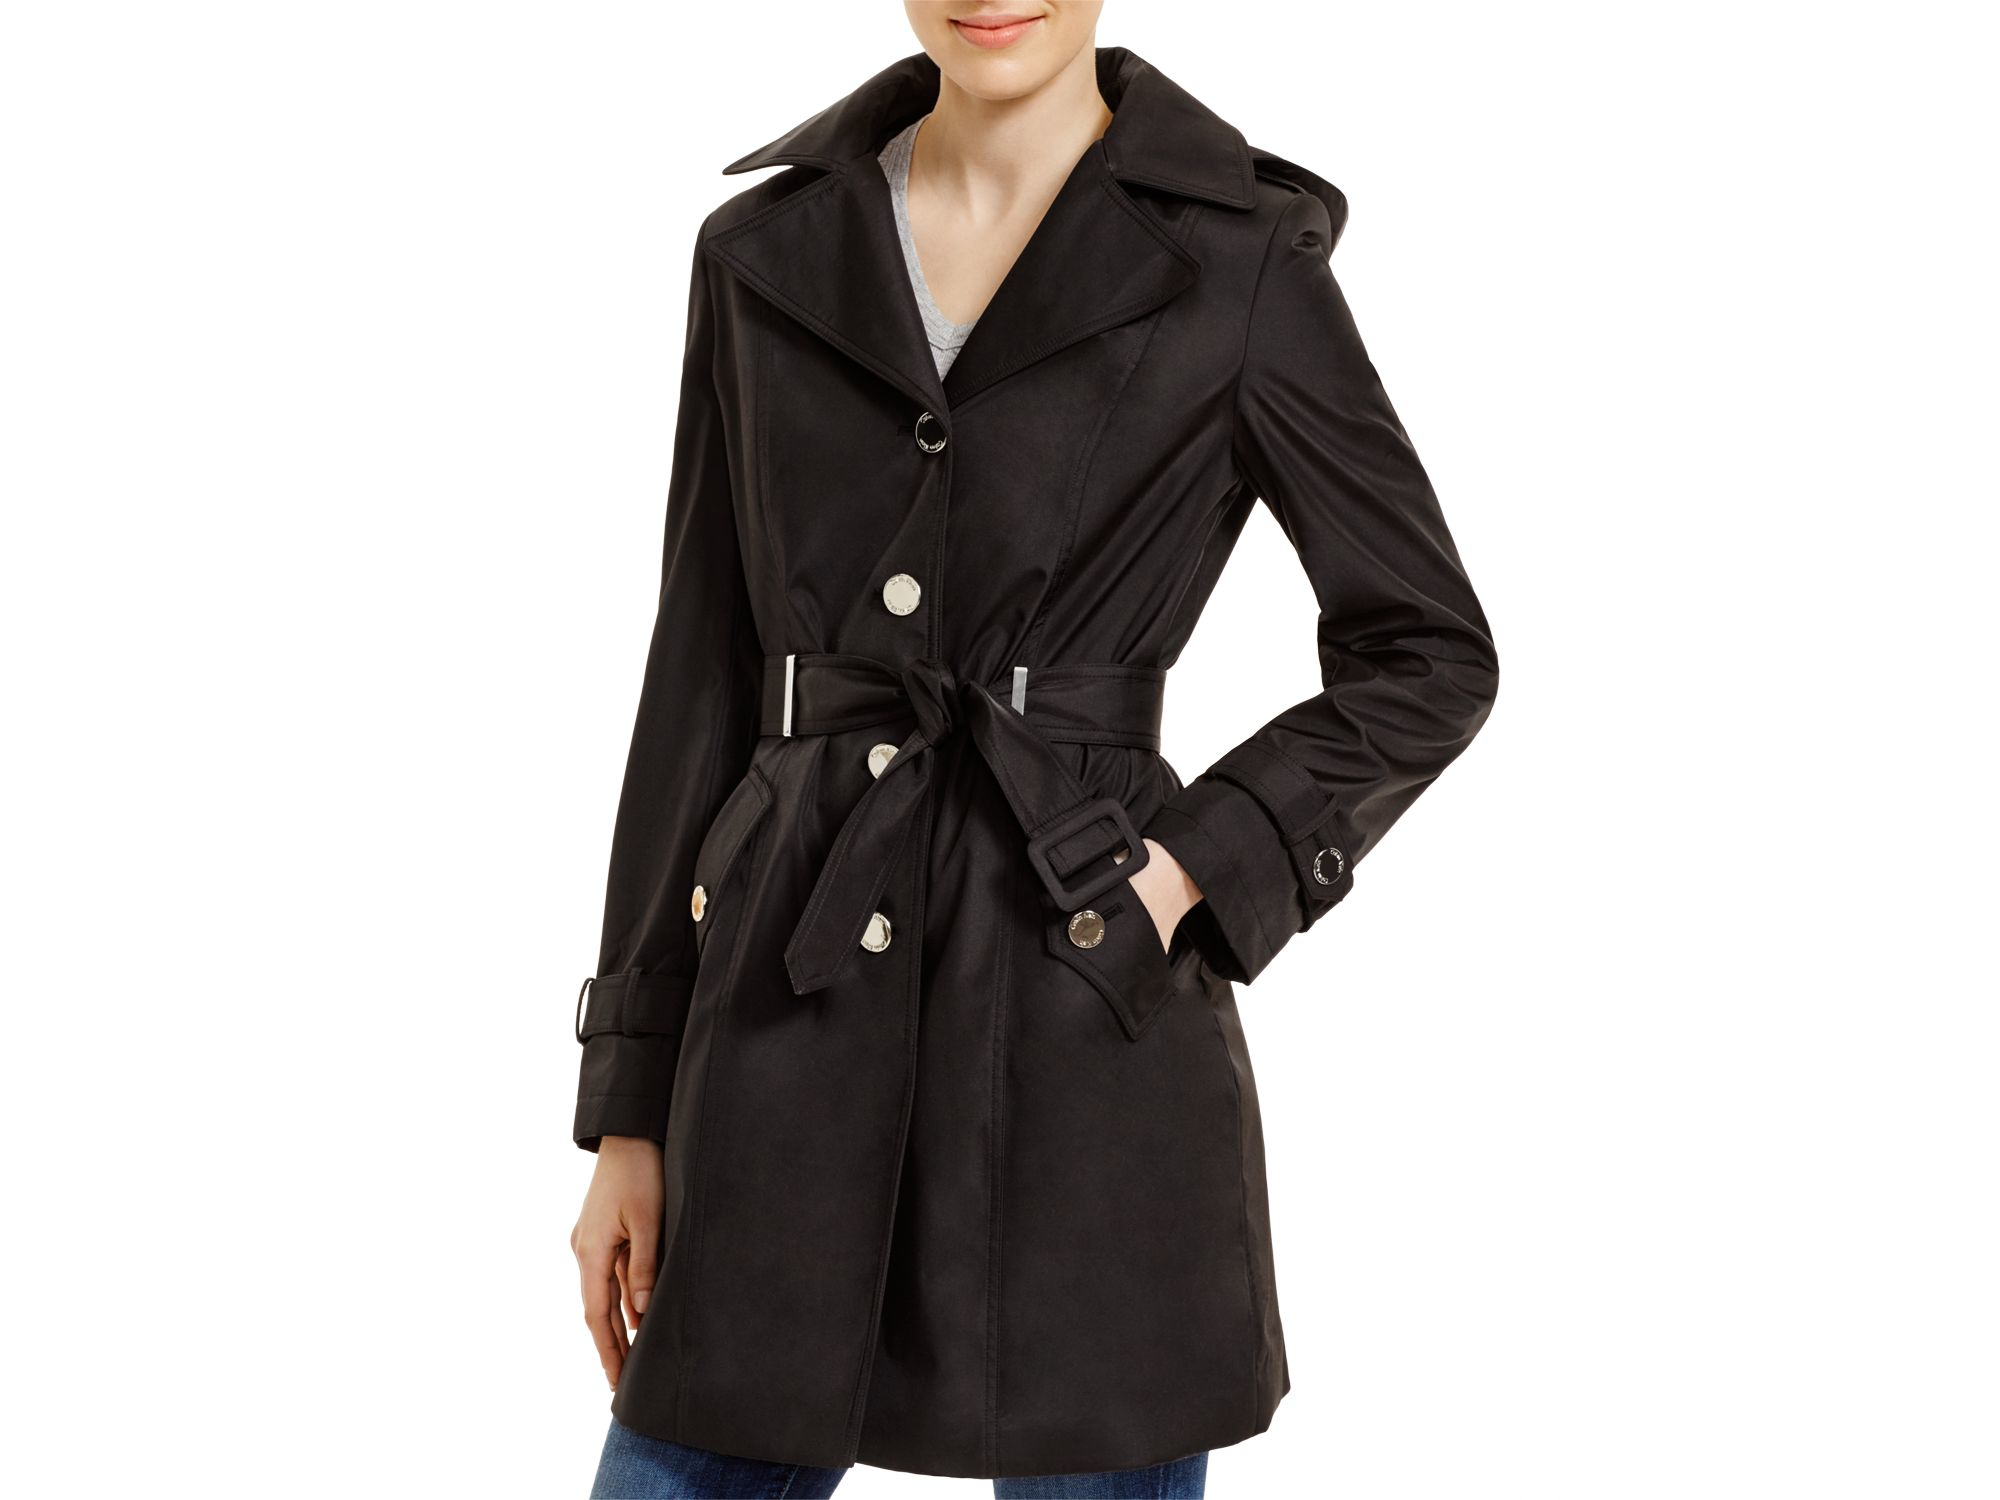 black trench coat with hood - photo #40